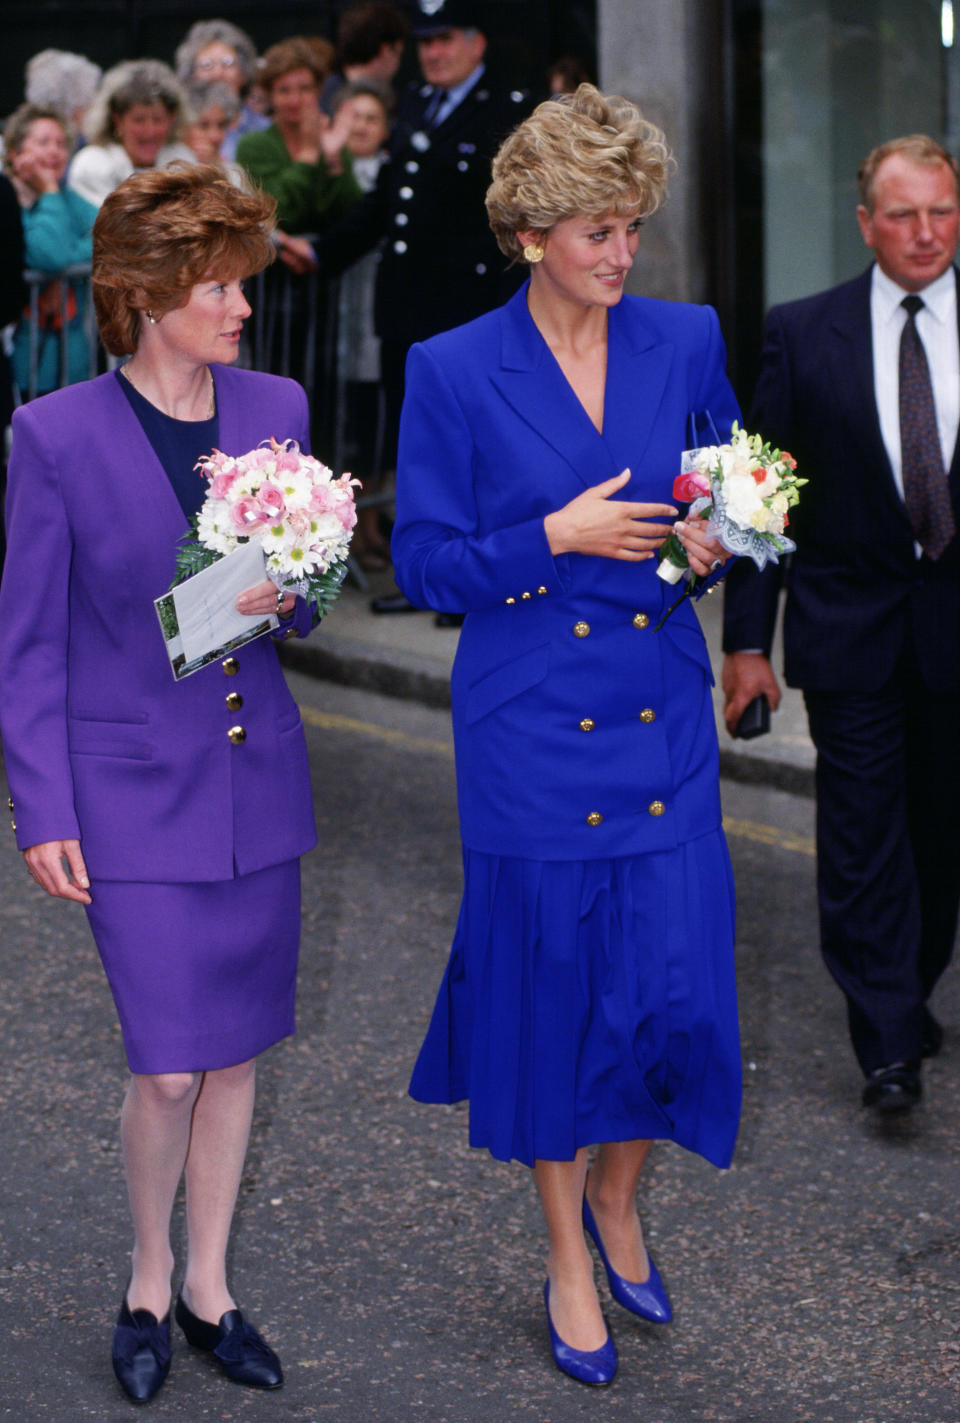 Diana, Princess of Wales with her sister and Lady-in-Waiting, Sarah McCorquodale.